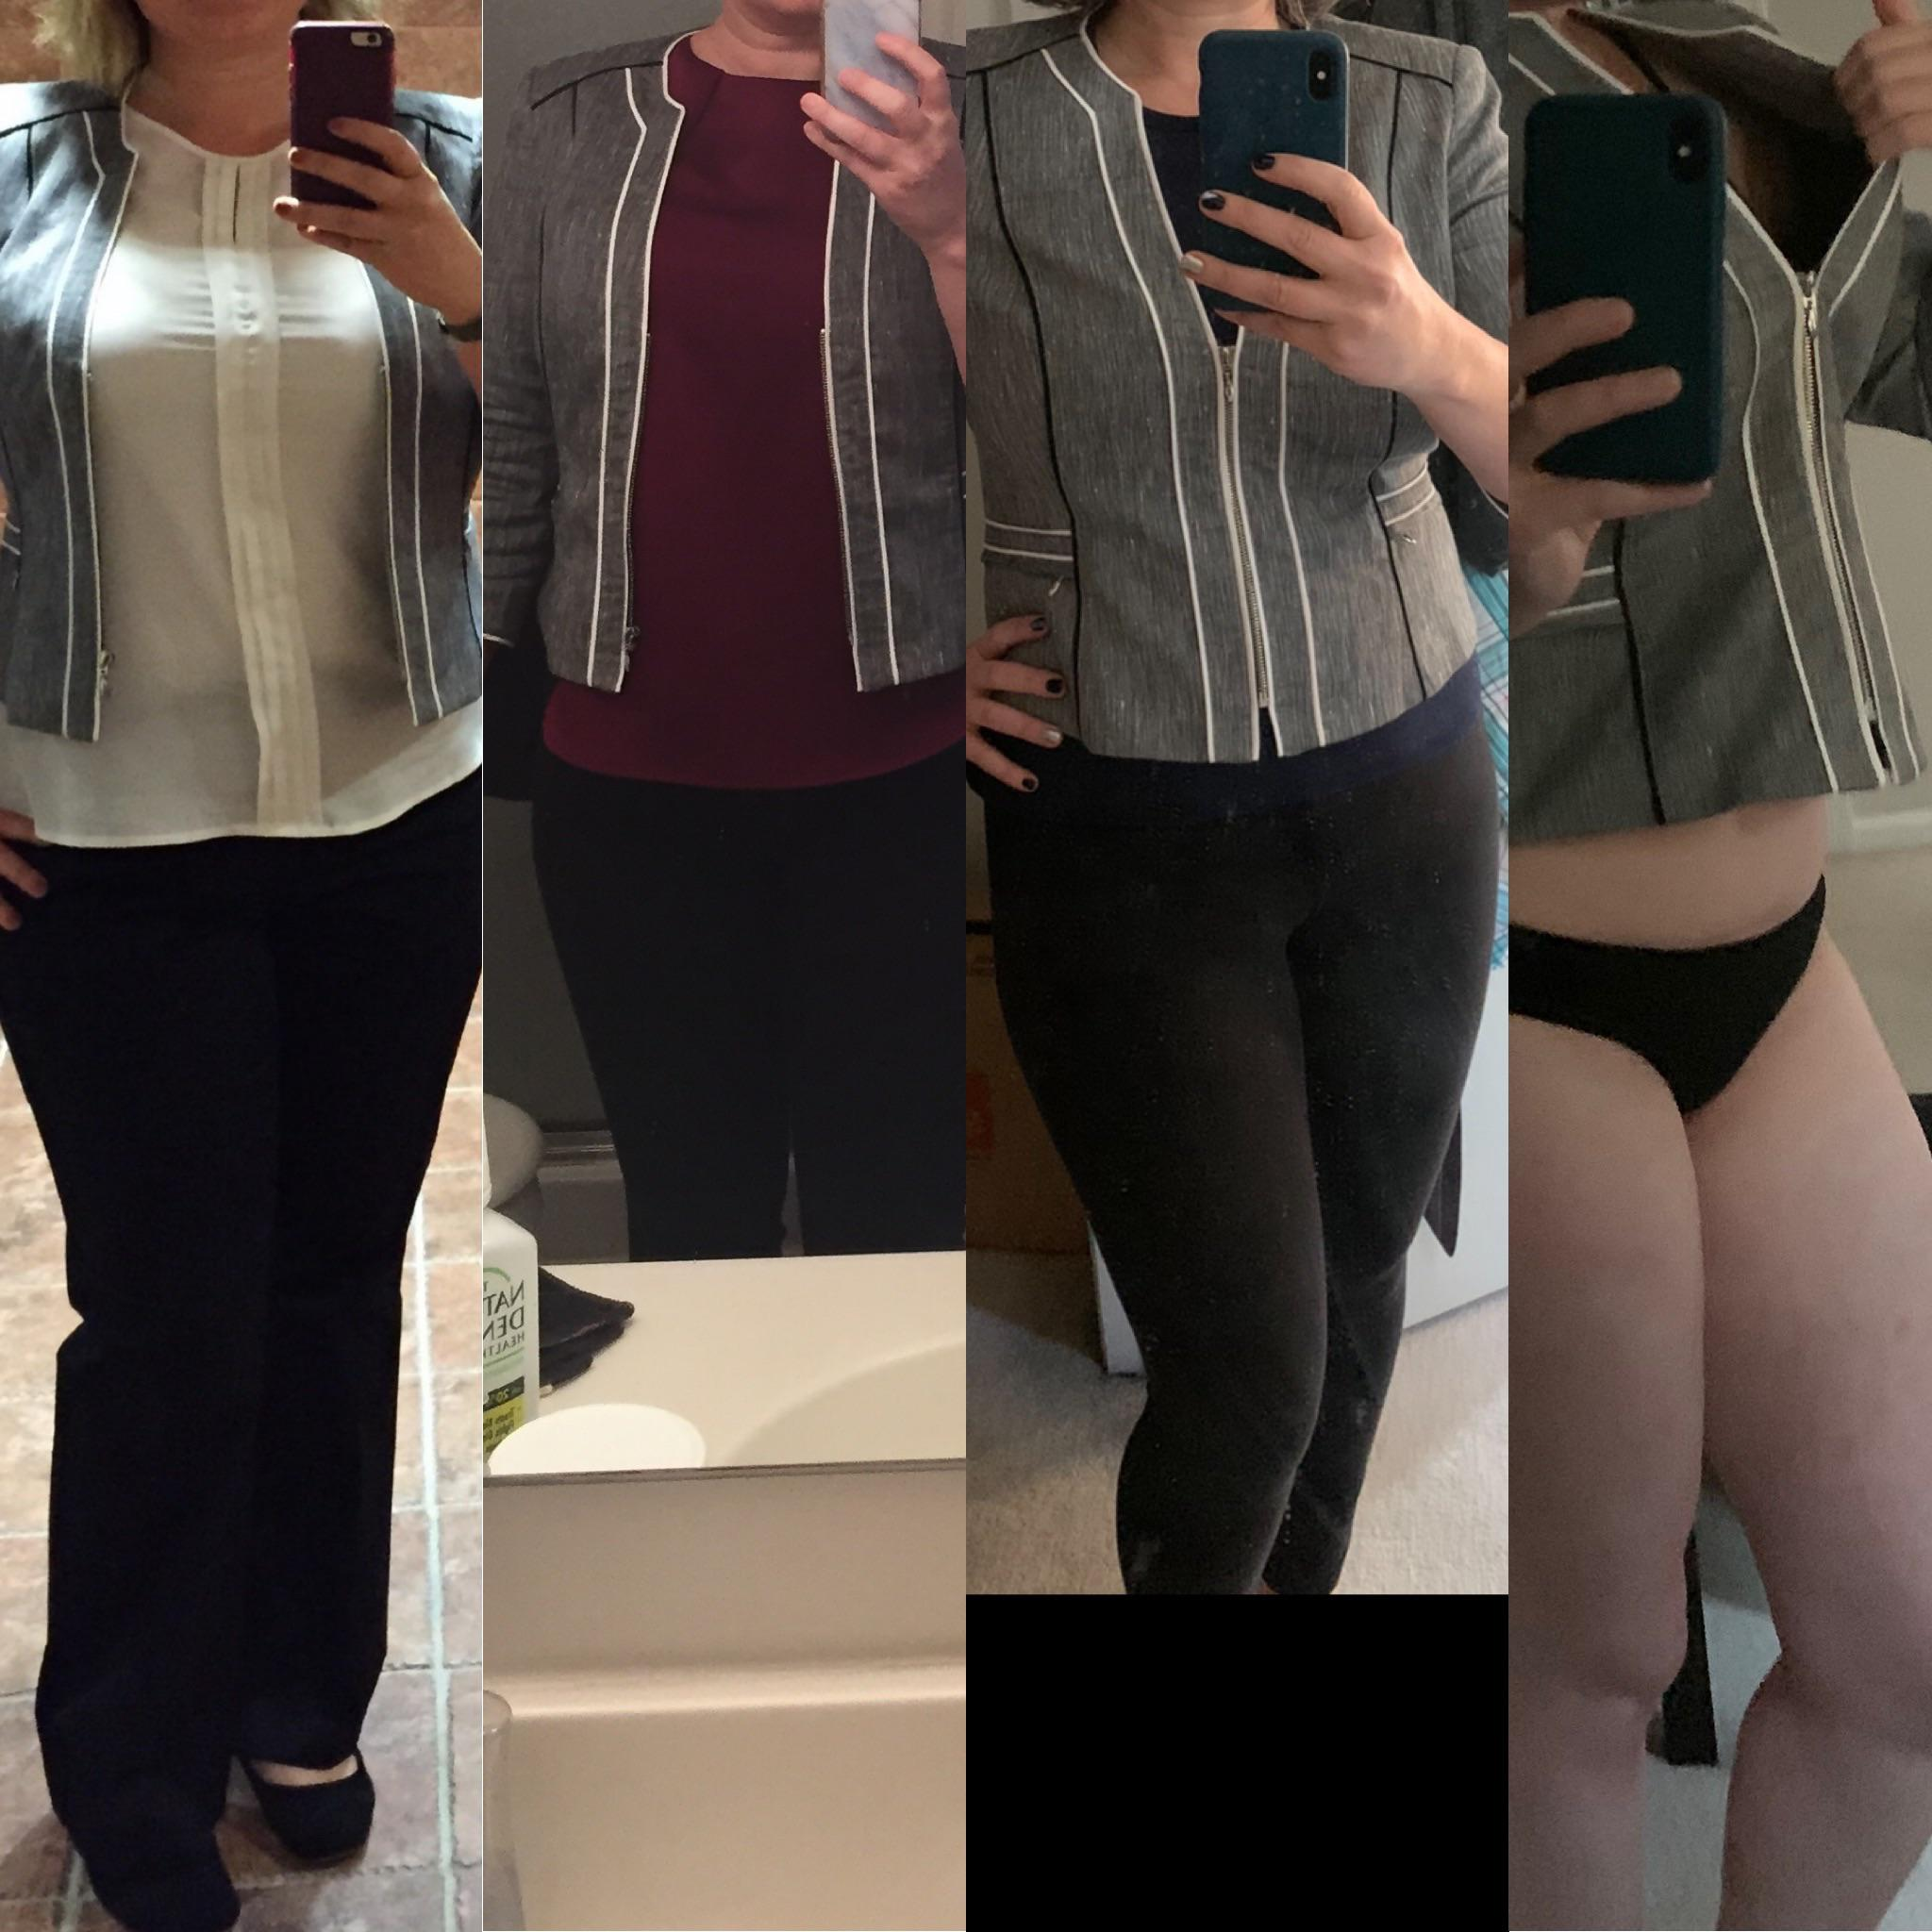 5 foot 8 Female 50 lbs Weight Loss Before and After 220 lbs to 170 lbs